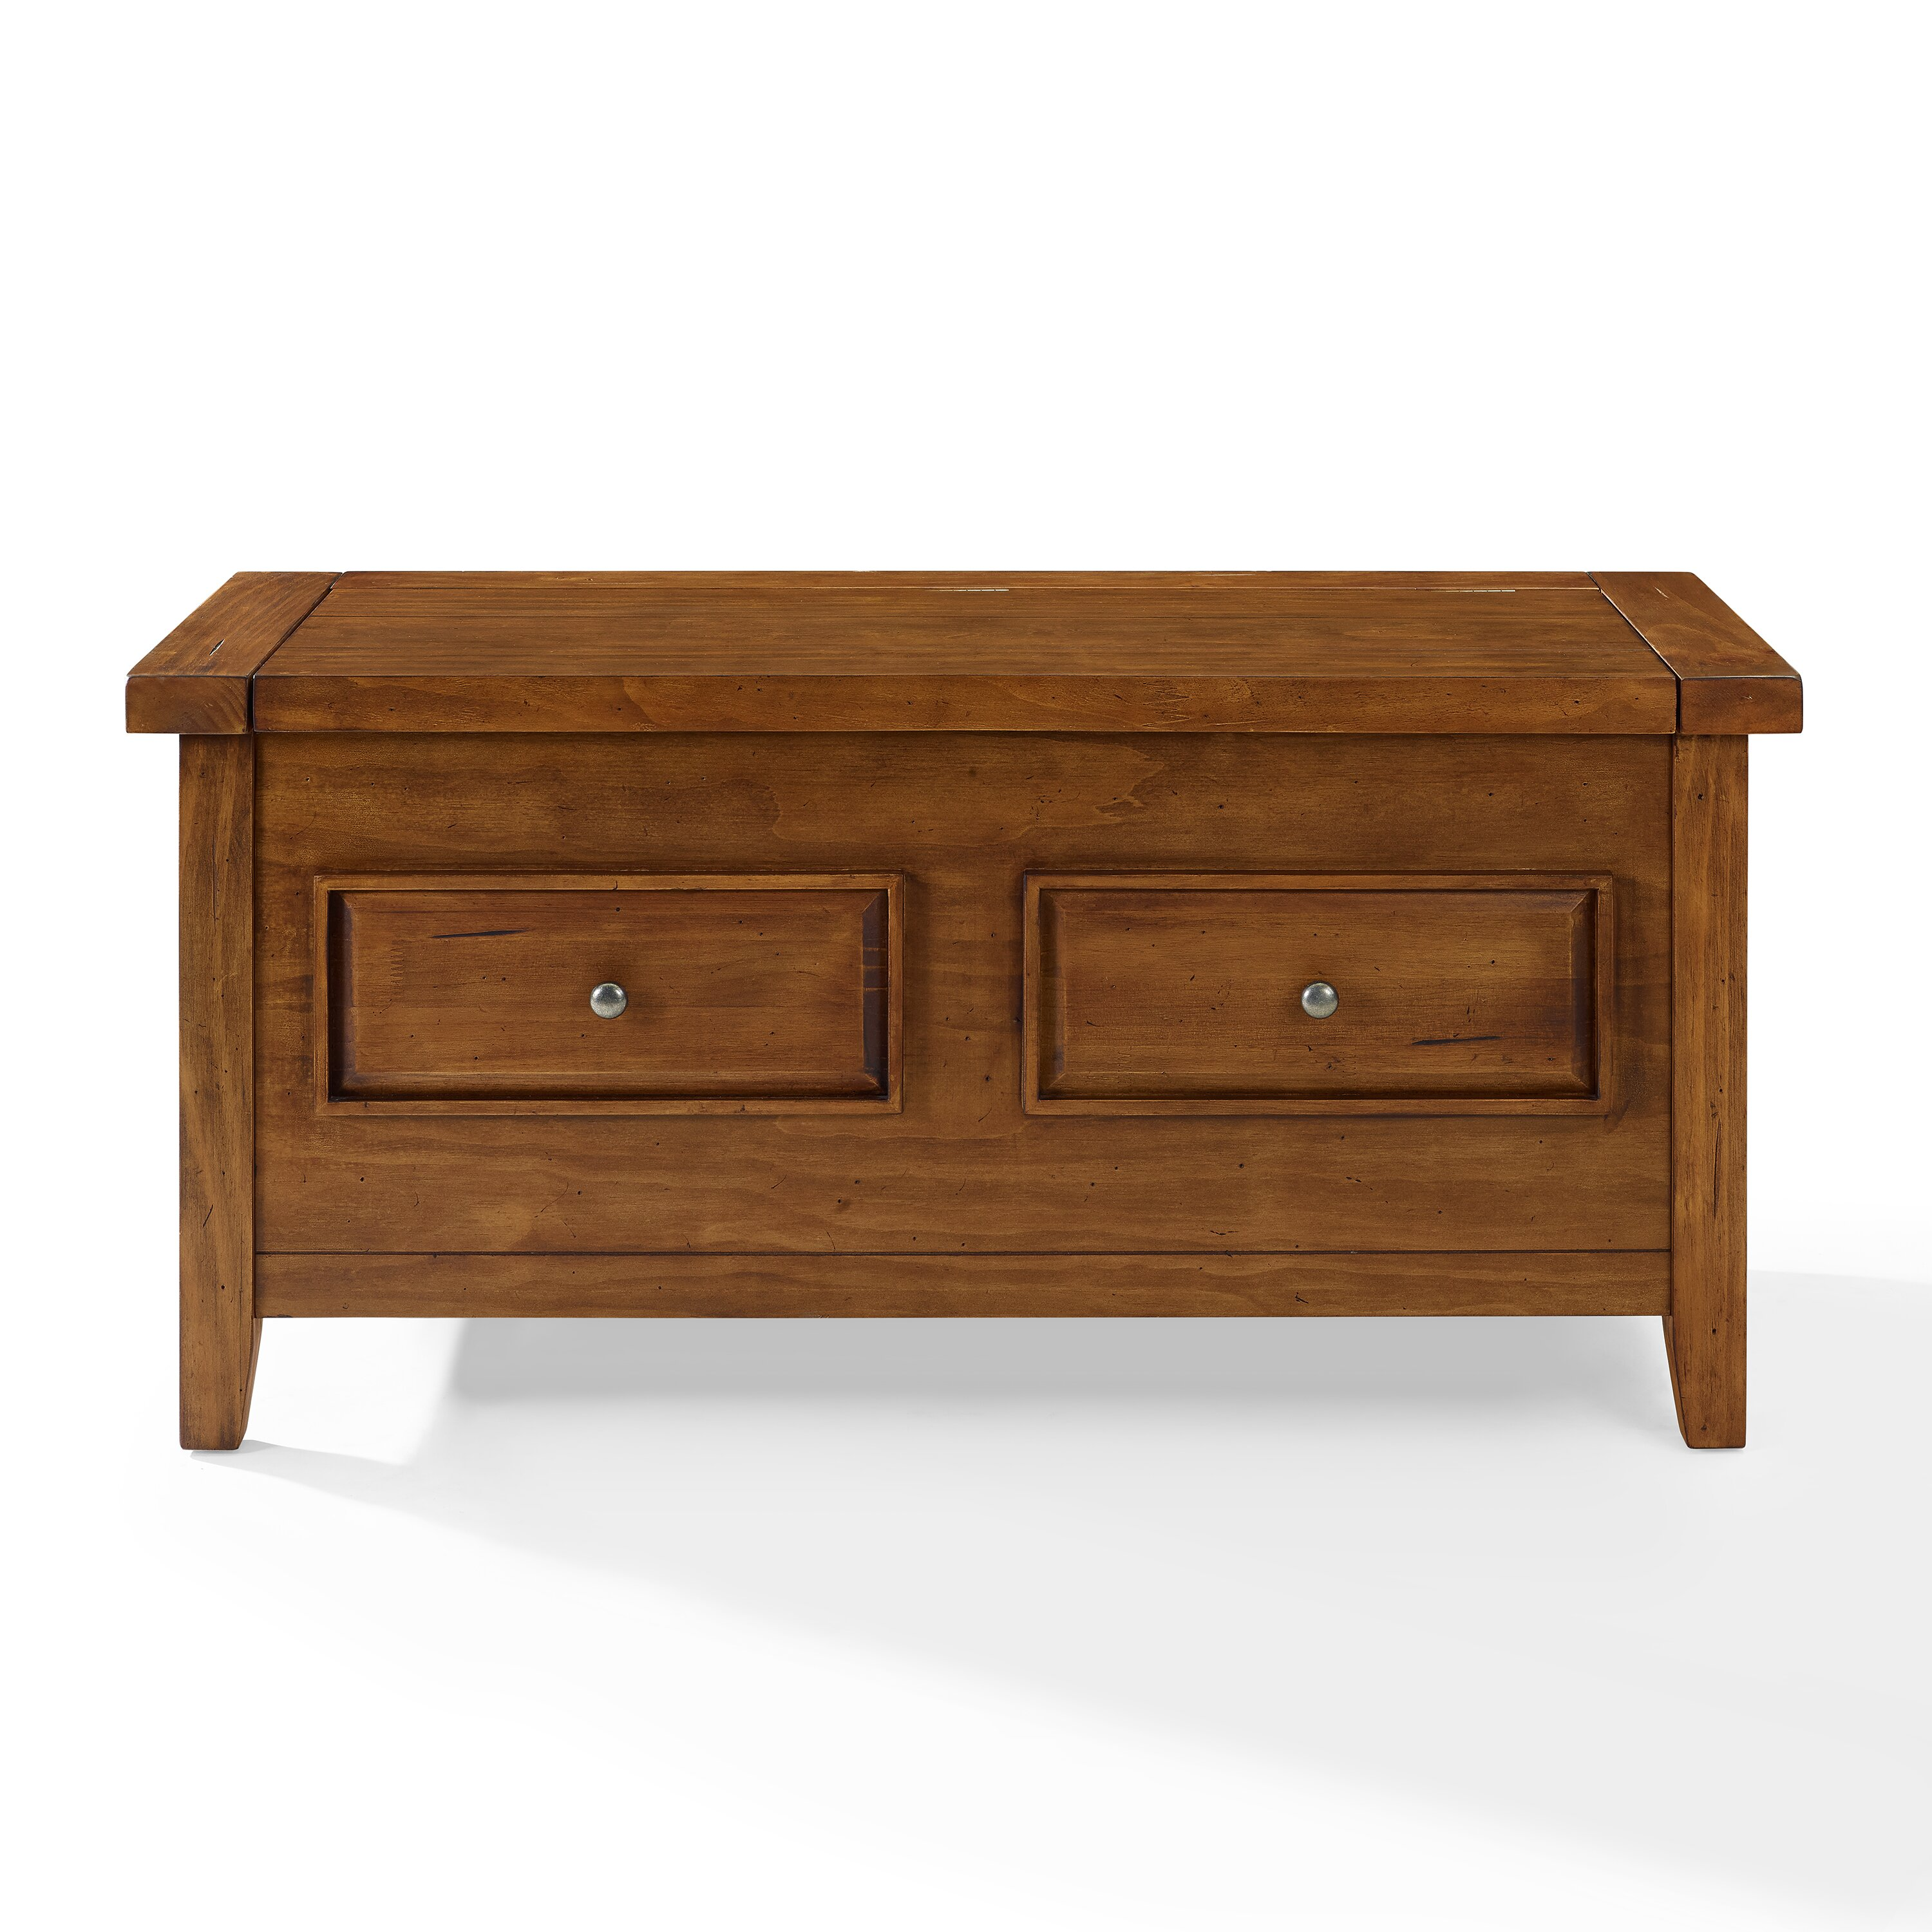 Loon Peak Ordway Wood Storage Bedroom Bench Wayfair